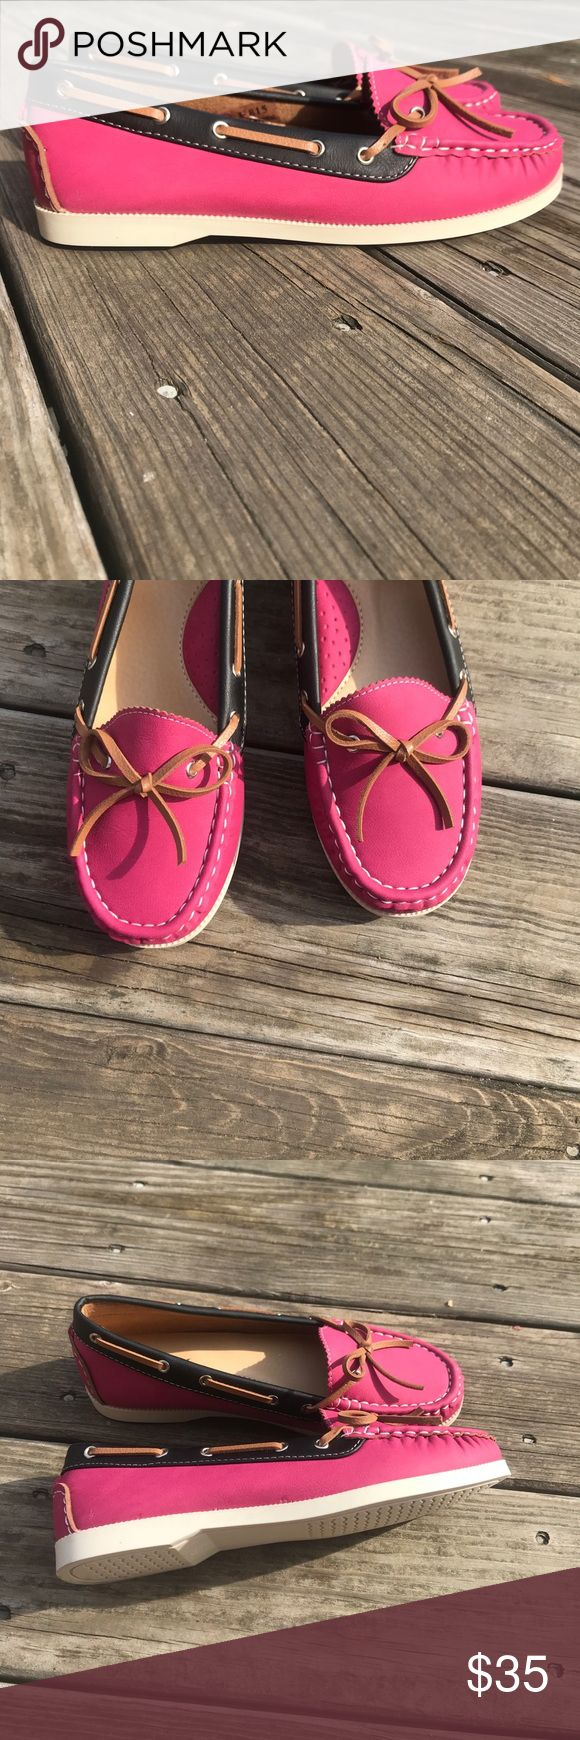 NEW 💕 Cute Pink and Black Boat Shoes Sz 7.5 How Cute!! New in Box. Size 7.5. Fit is true to size. Very comfortable padded insoles. Shoes Flats & Loafers